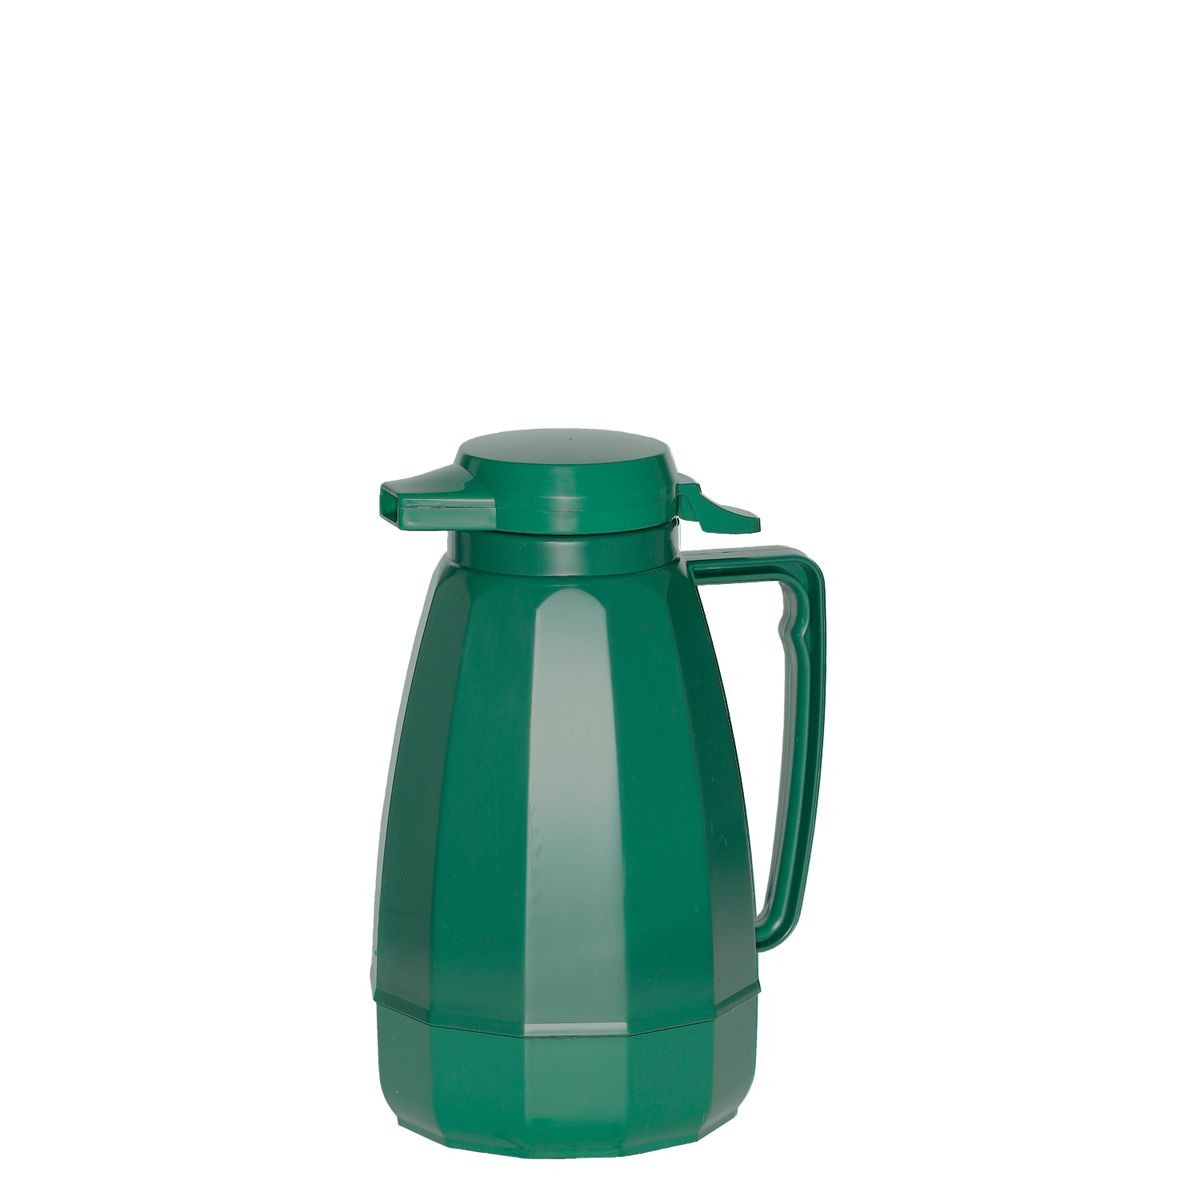 Service Ideas NG101FG New Generation Forest Green Coffee Server, 1 Liter (34 oz.)